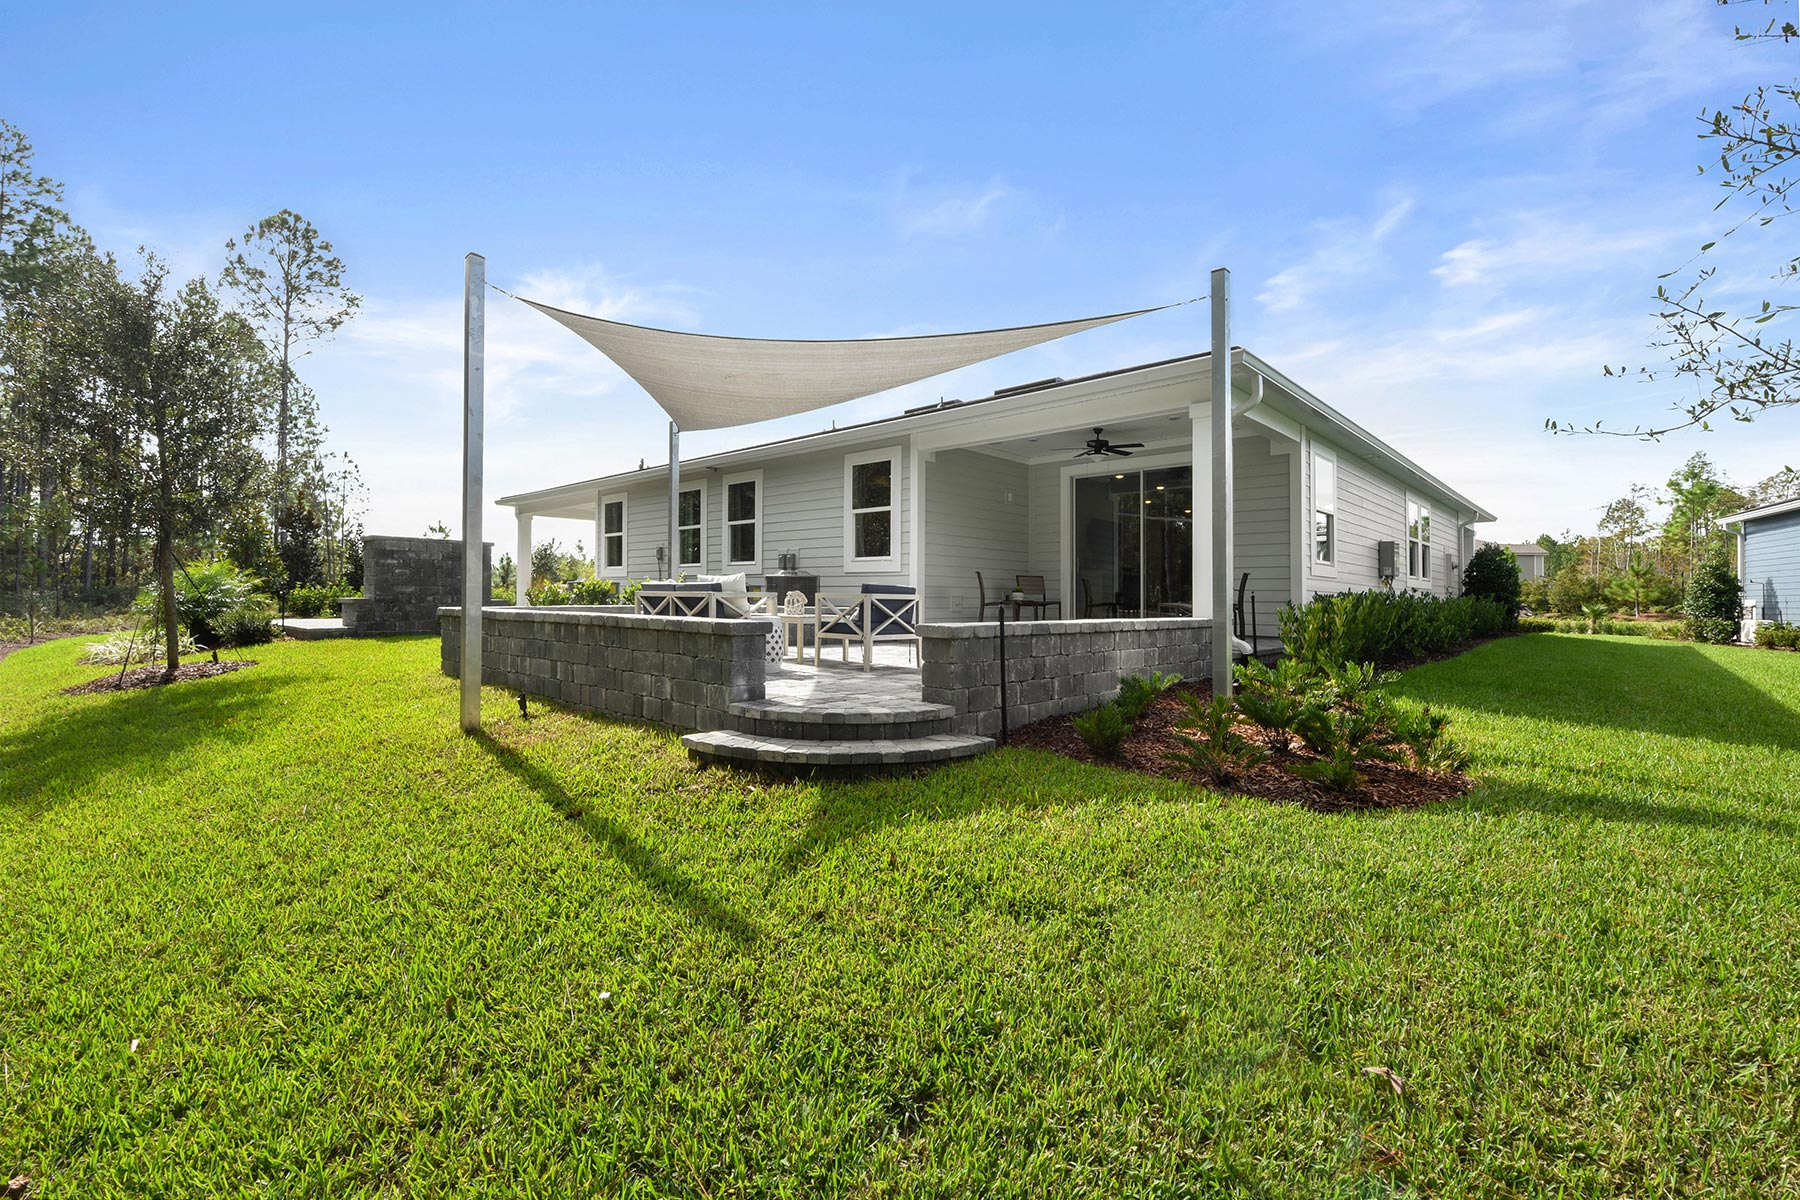 Ocean Plan Elevation Back Side at RiverTown - WaterSong in St. Johns Florida by Mattamy Homes